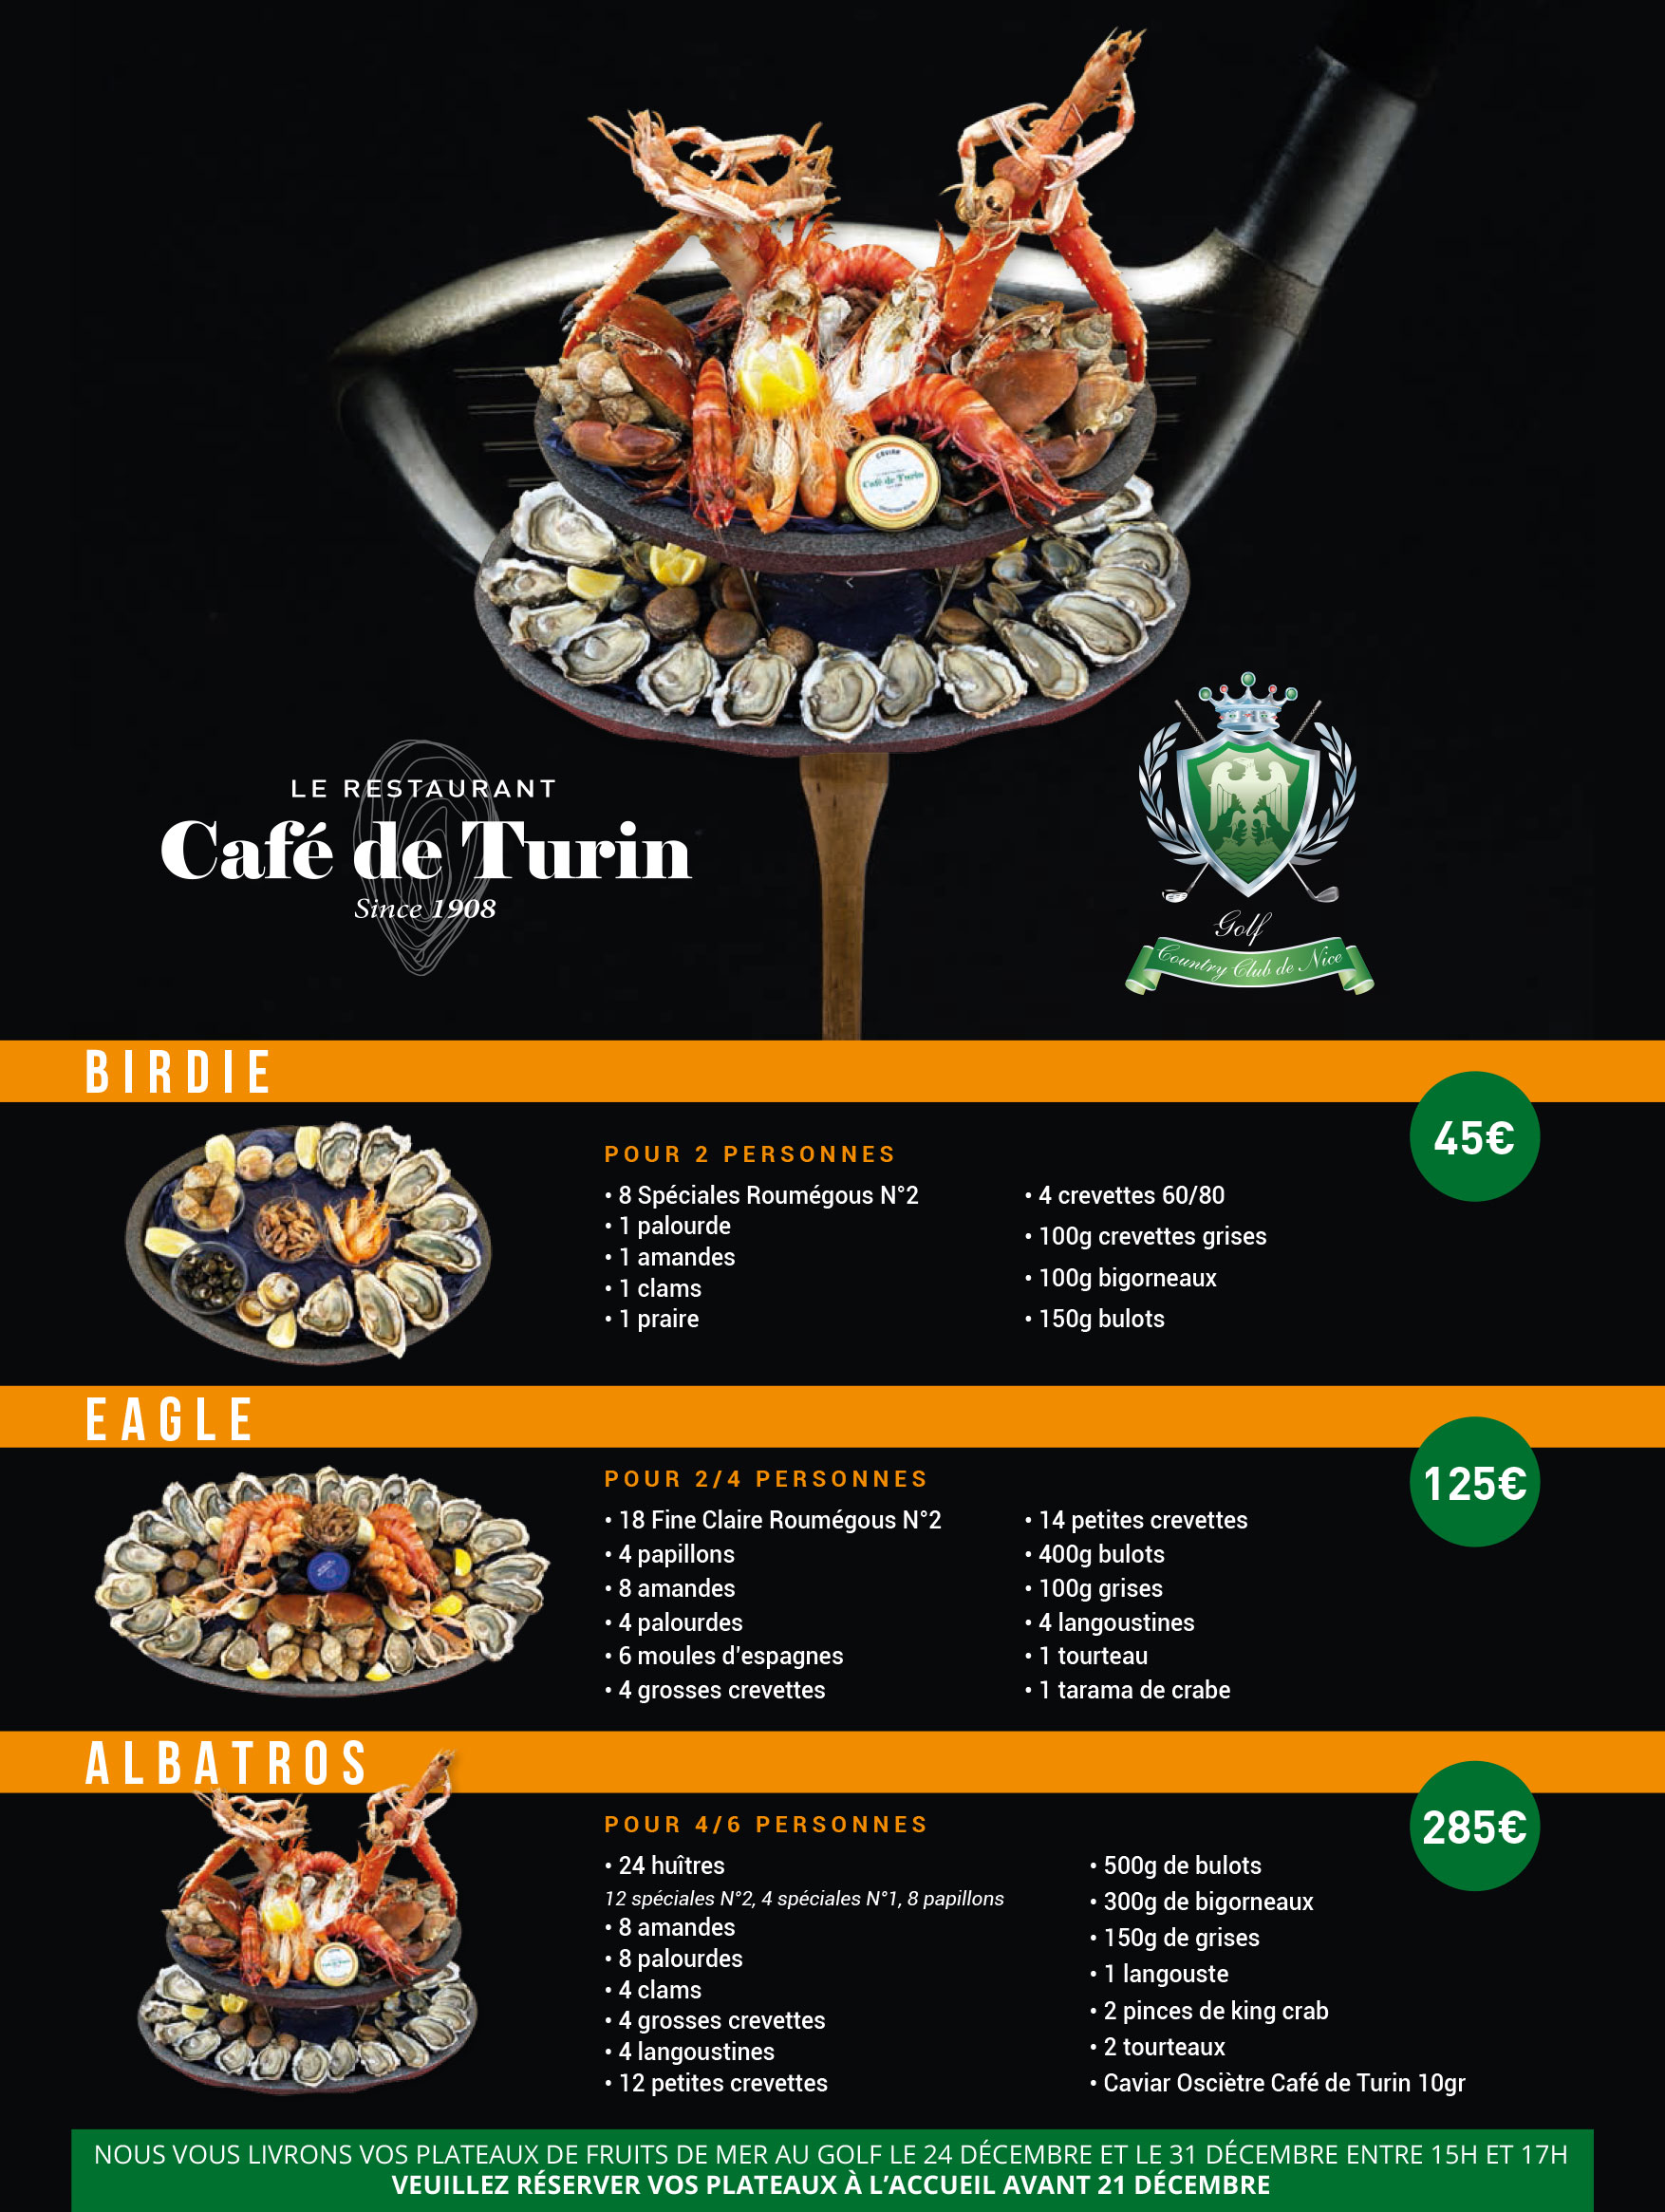 cafe de turin full